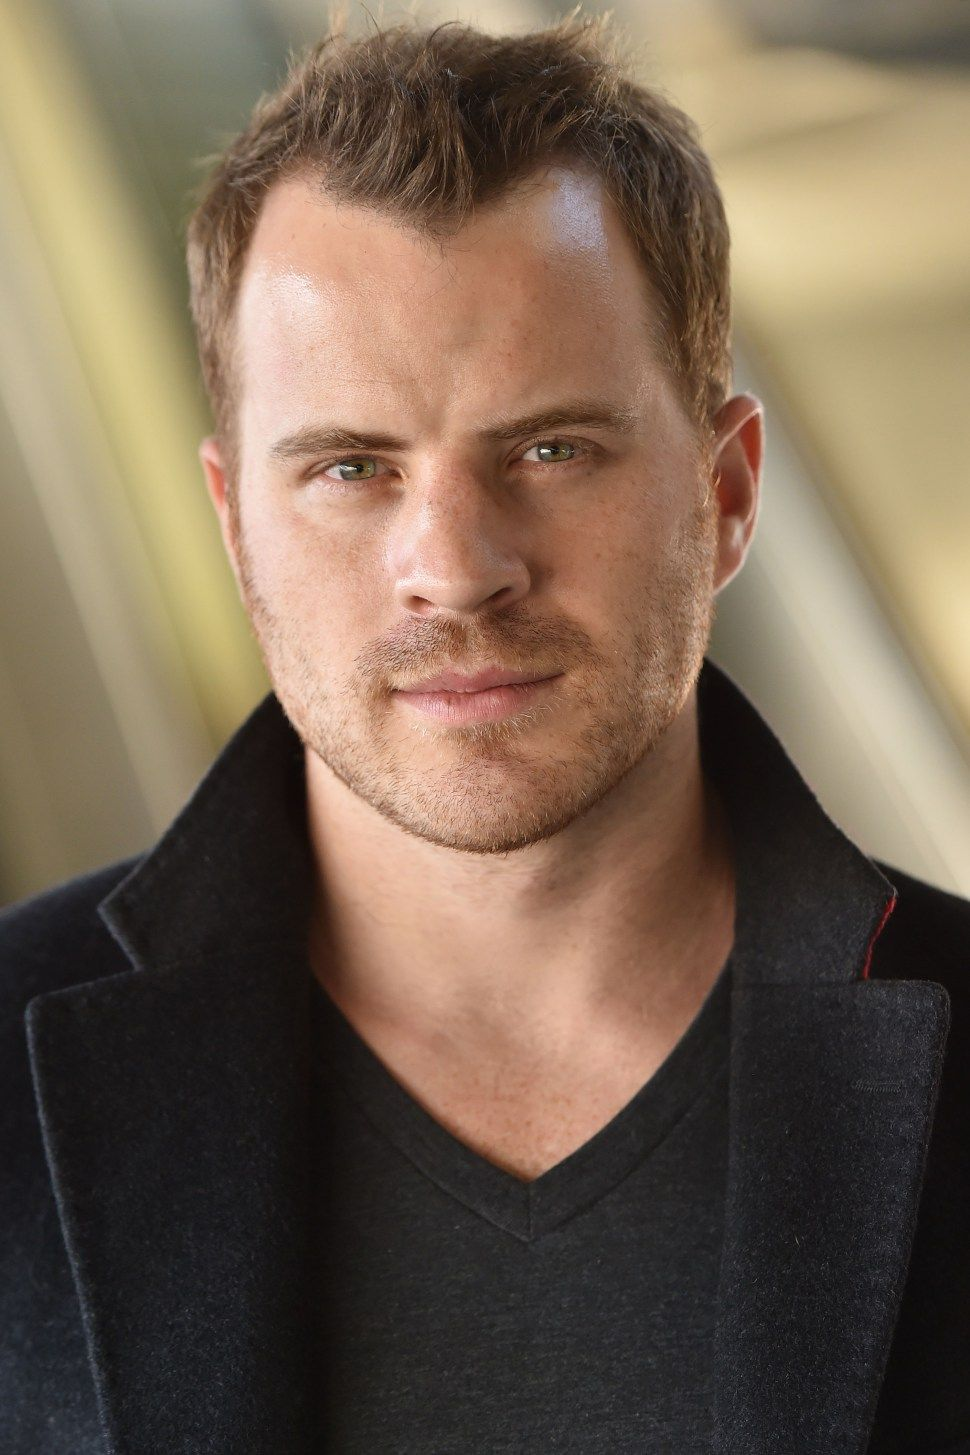 robert kazinsky hobbitrobert kazinsky mass effect, robert kazinsky hobbit, robert kazinsky age, robert kazinsky and chloe dykstra, robert kazinsky world of warcraft, robert kazinsky wife, robert kazinsky warcraft, robert kazinsky height, robert kazinsky instagram, robert kazinsky twitter, robert kazinsky imdb, robert kazinsky, robert kazinsky tumblr, robert kazinsky wiki, robert kazinsky pacific rim, robert kazinsky wow, robert kazinsky 2015, robert kazinsky second chance, robert kazinsky facebook, robert kazinsky height weight